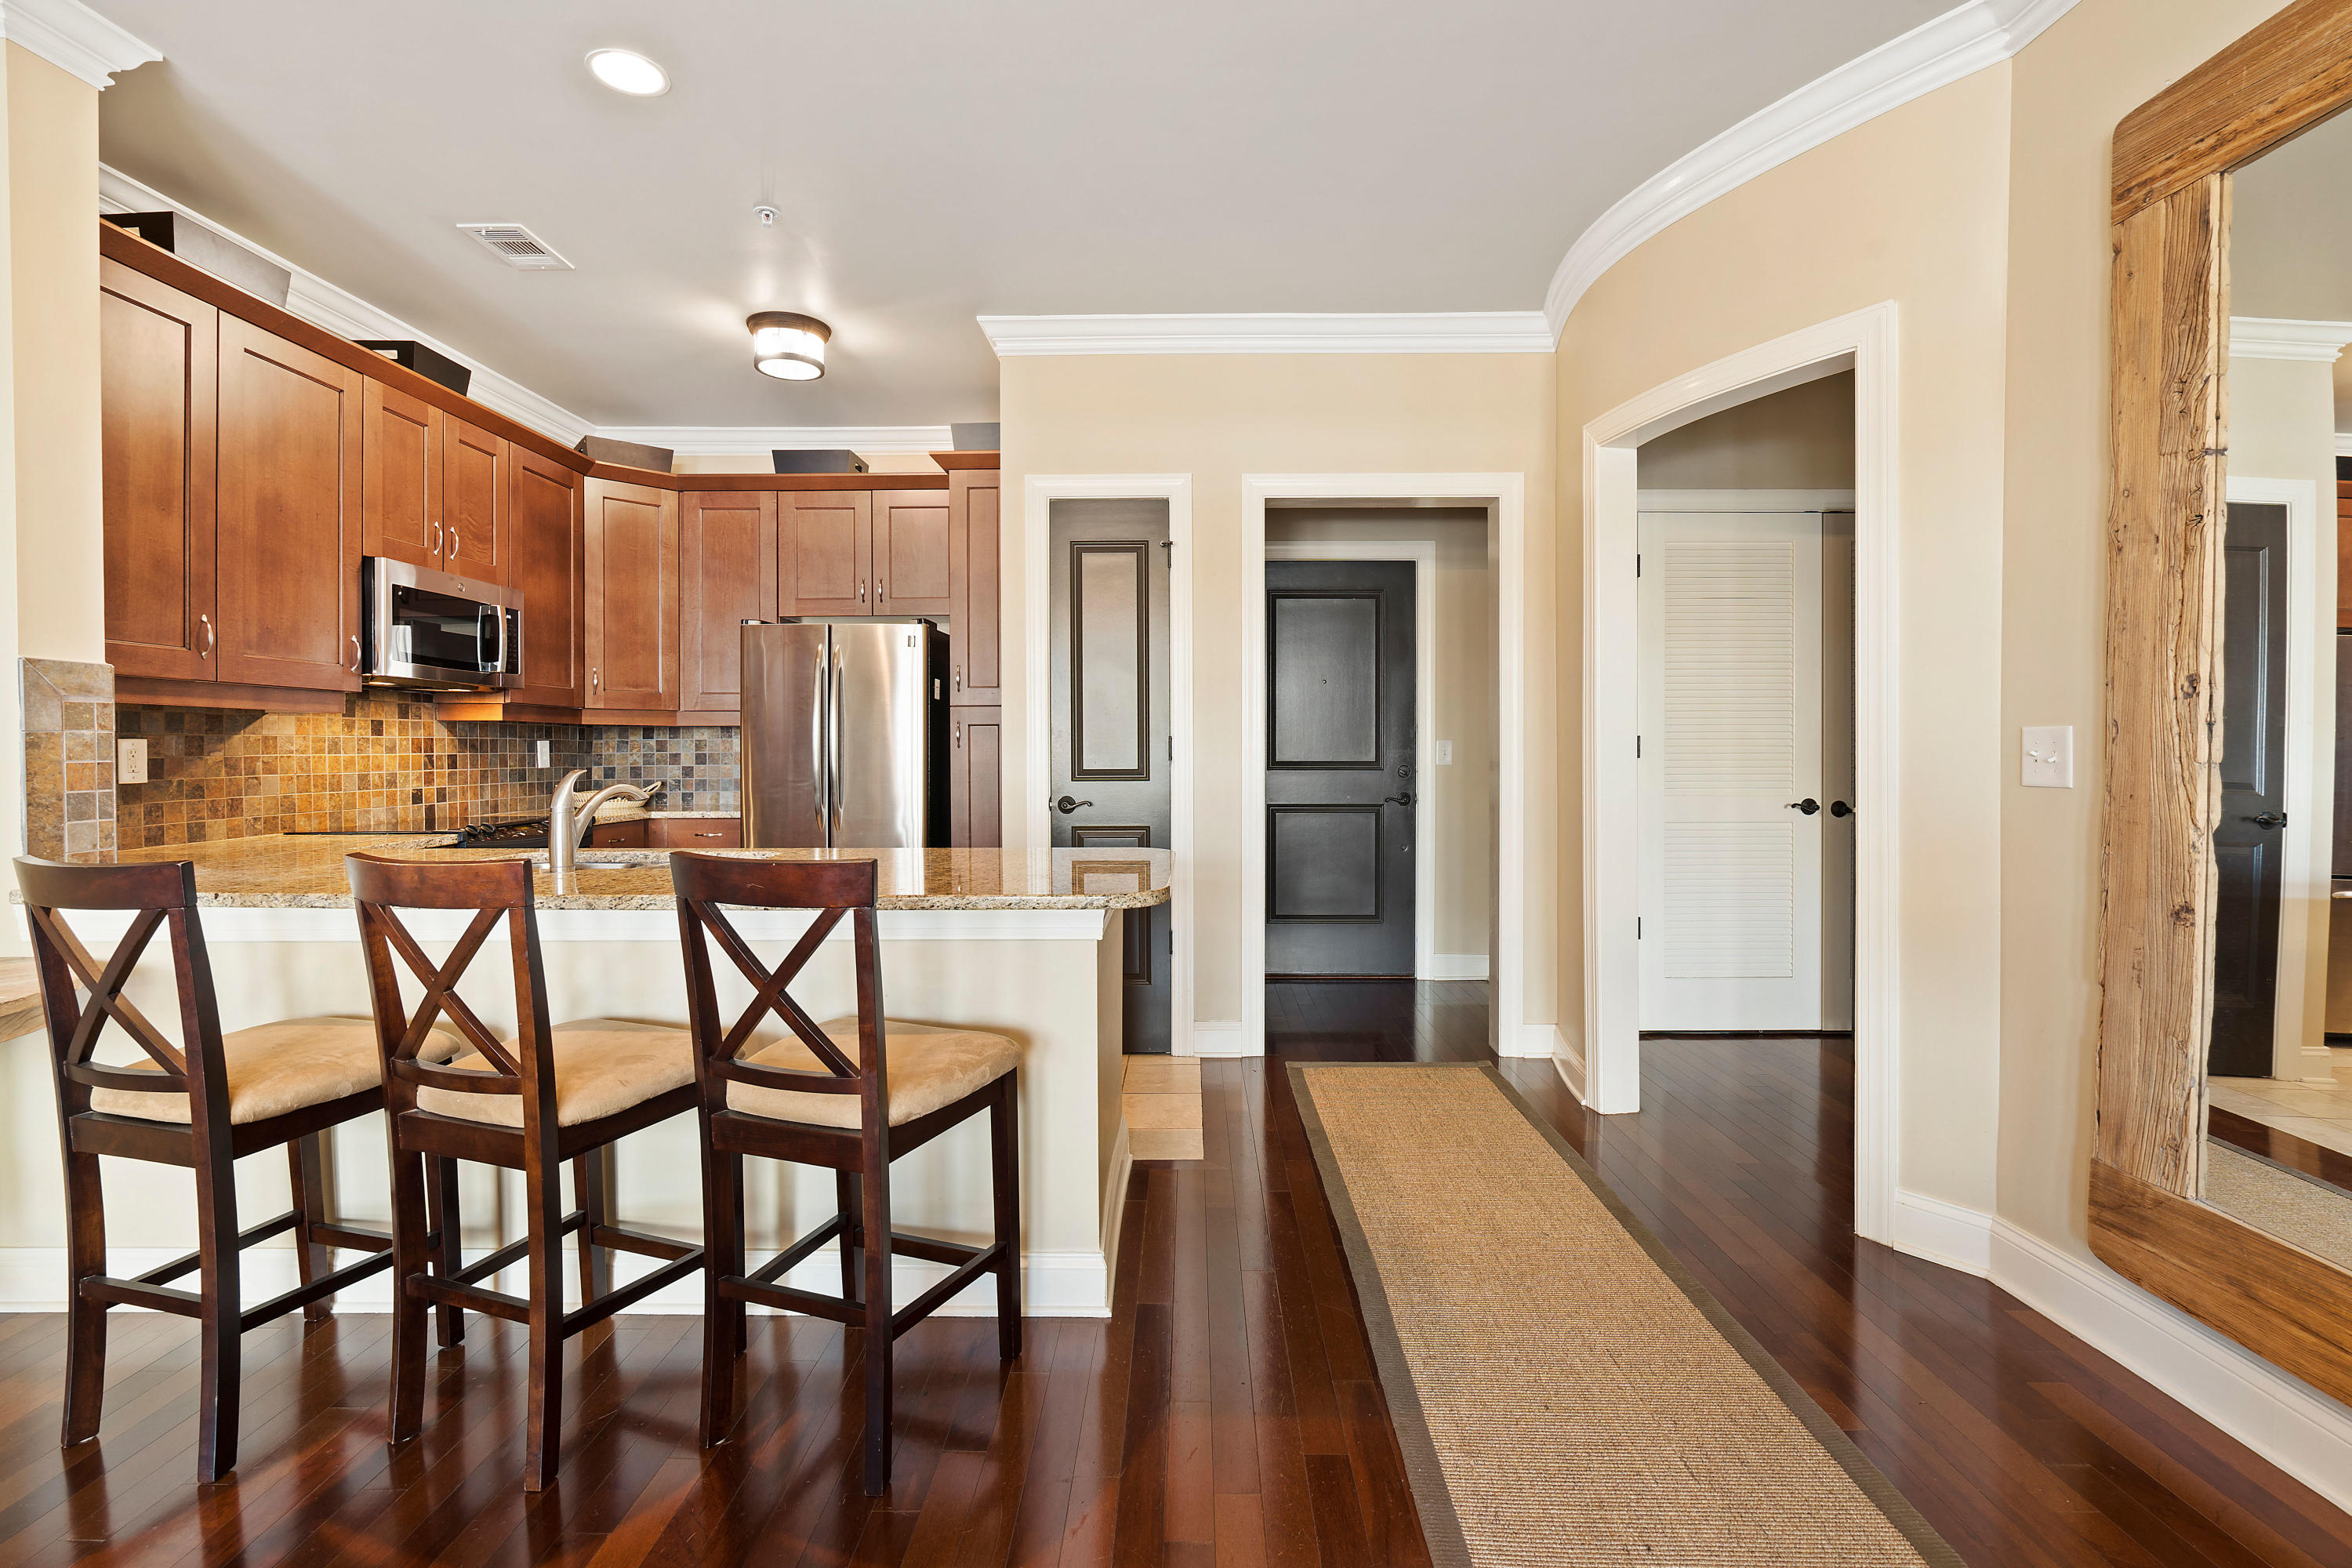 George And Society Condos For Sale - 21 George, Charleston, SC - 17